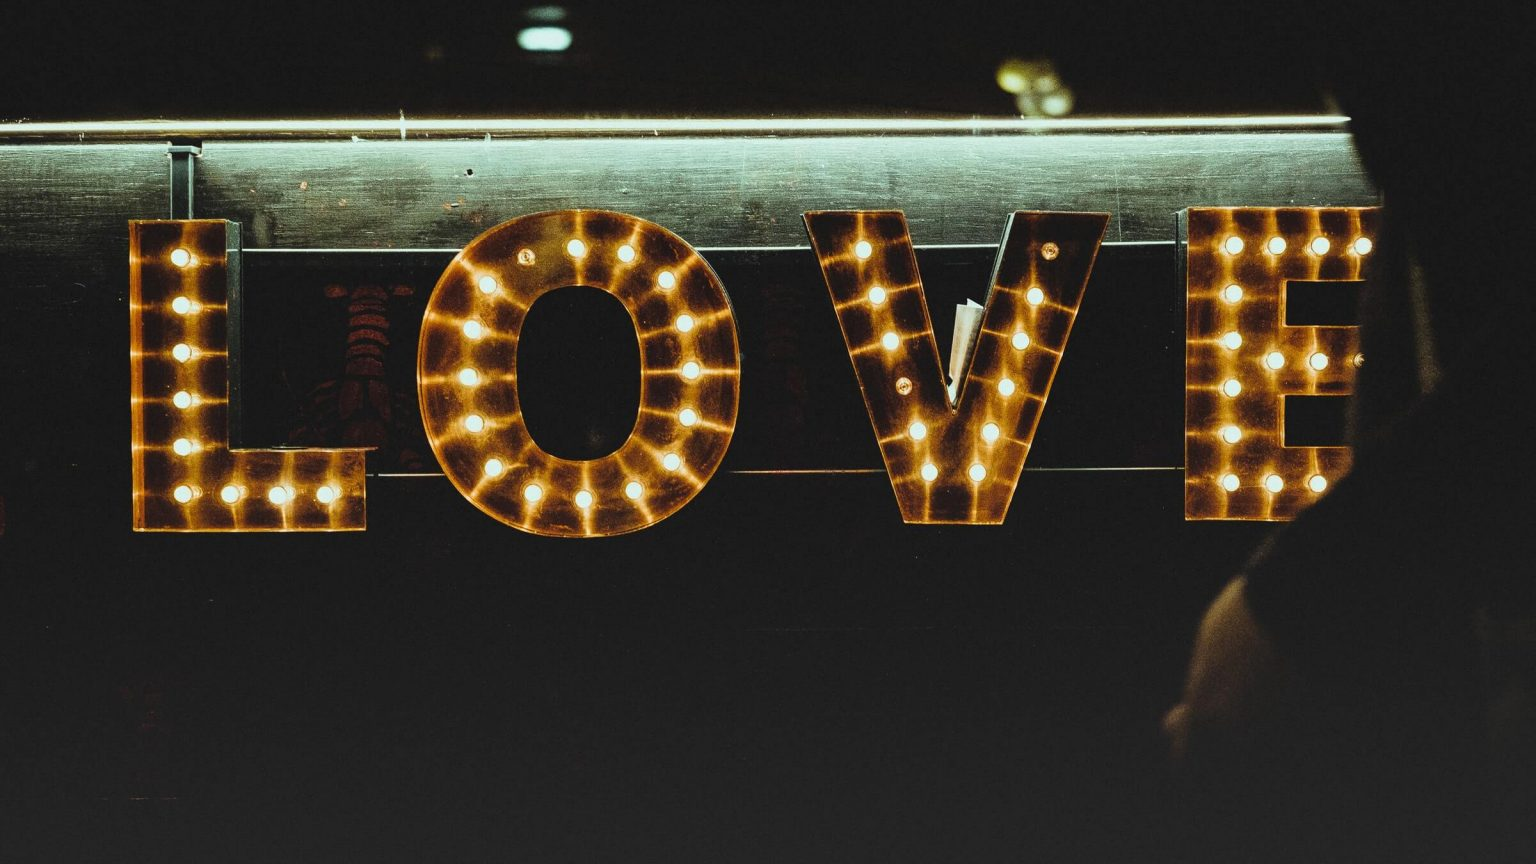 The word Love displayed by light